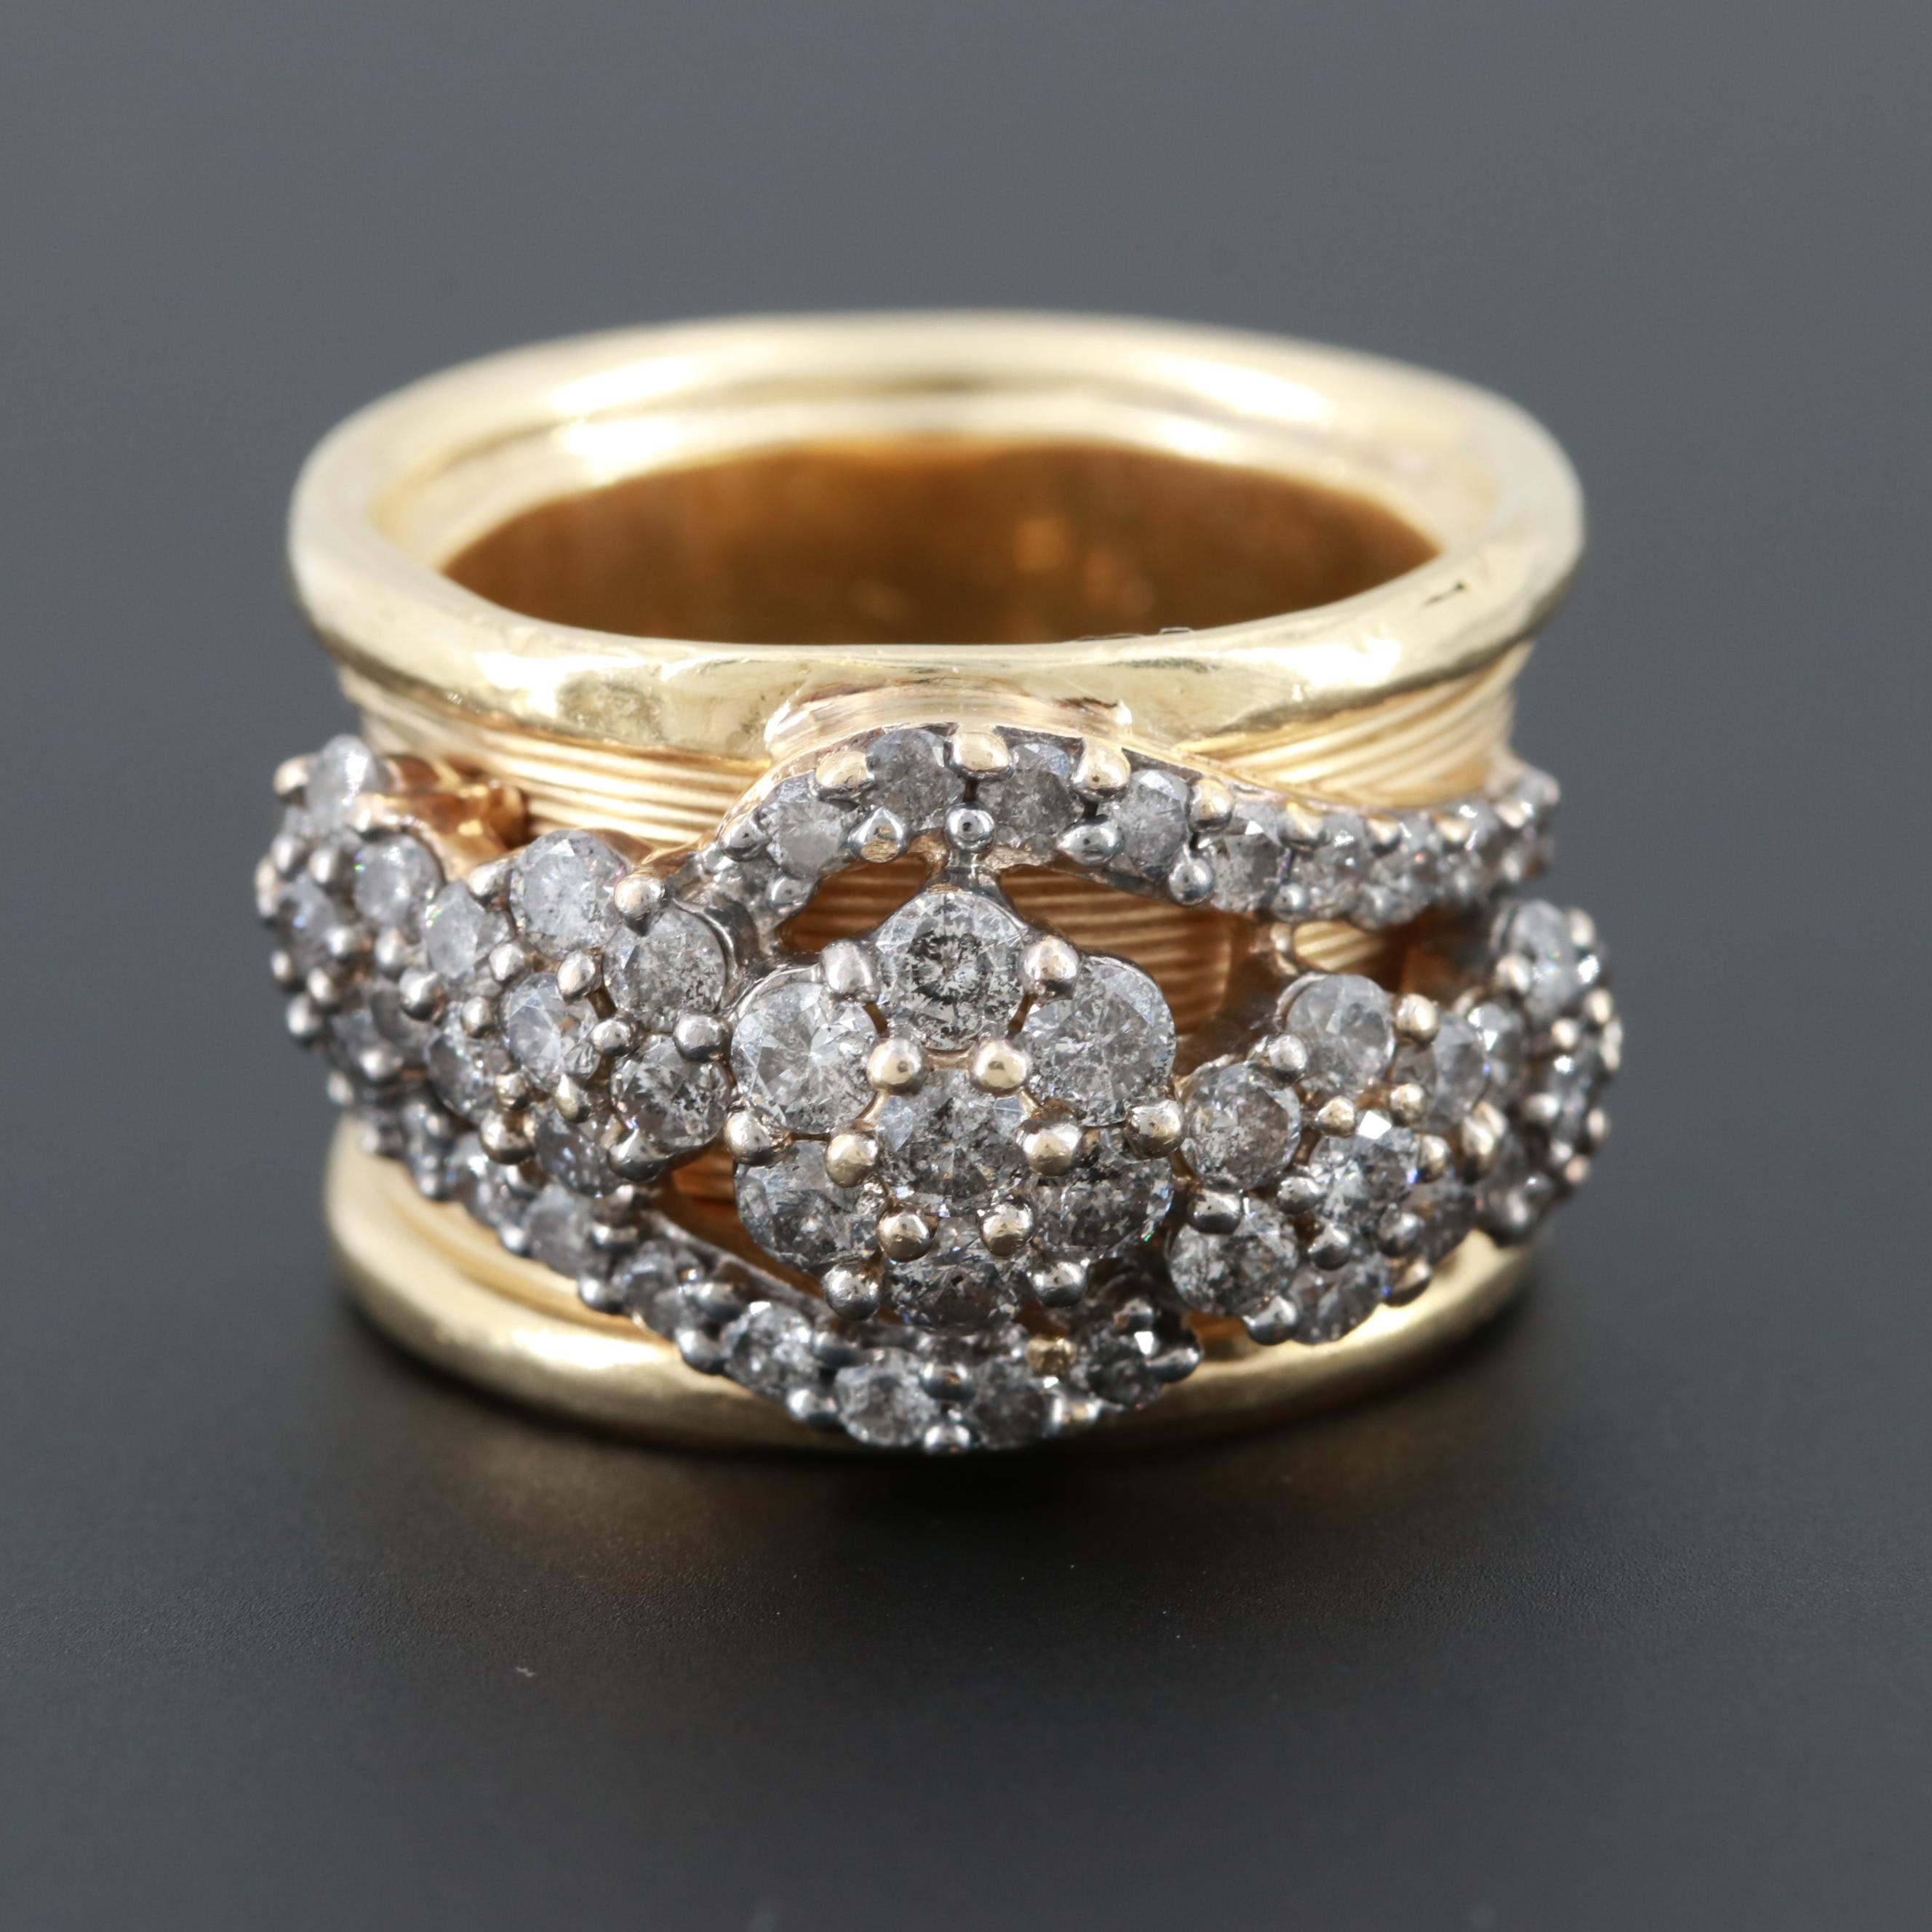 14K Yellow Gold 1.85 CTW Diamond Ring with 10K White Gold Accent